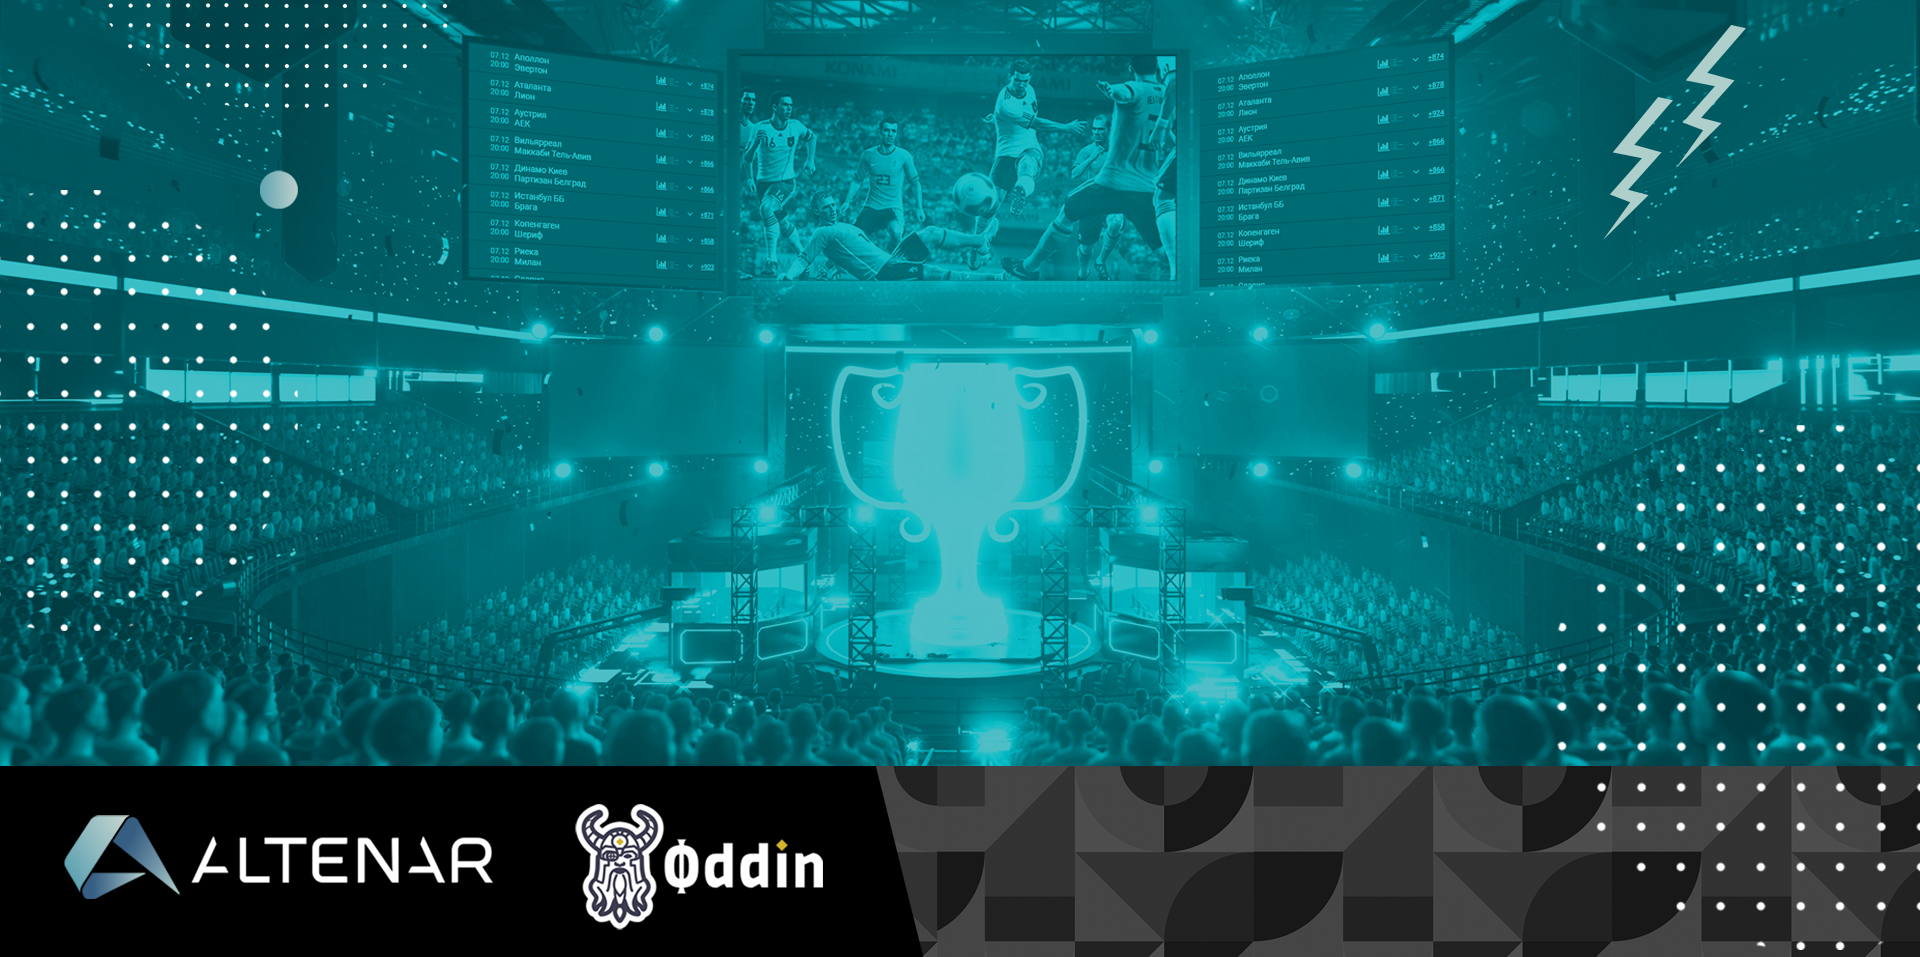 Altenar to integrate new esports odds feed from Oddin